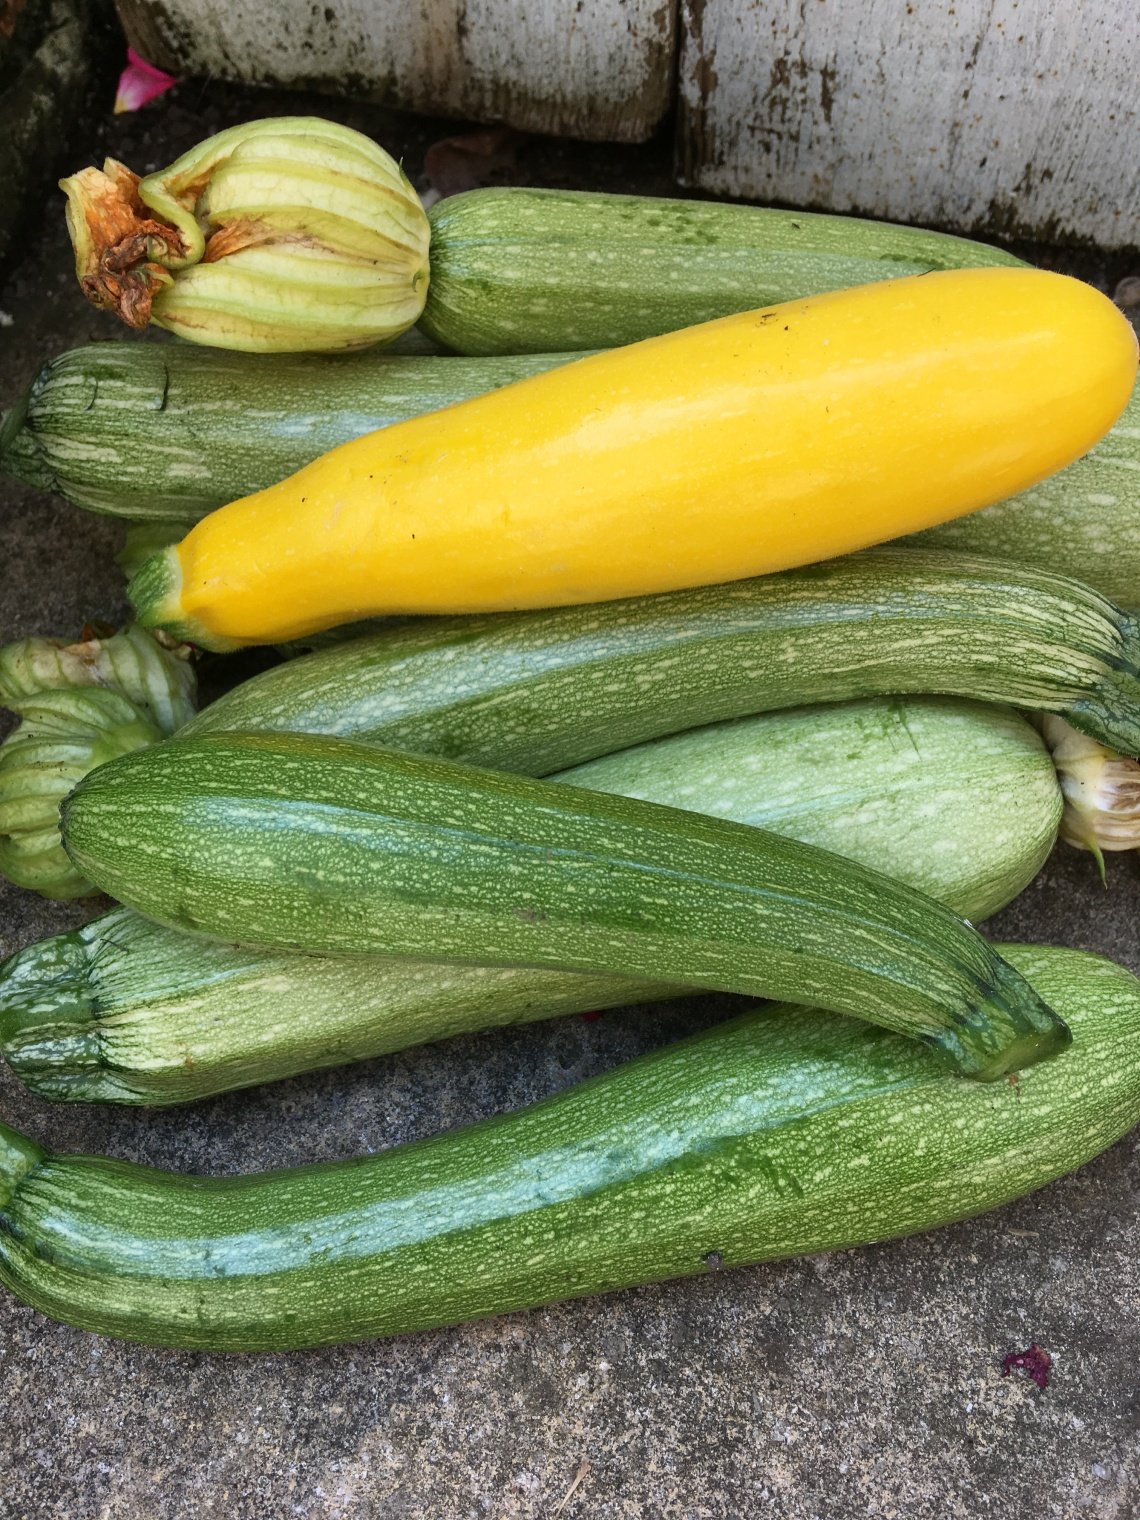 Courgette harvest